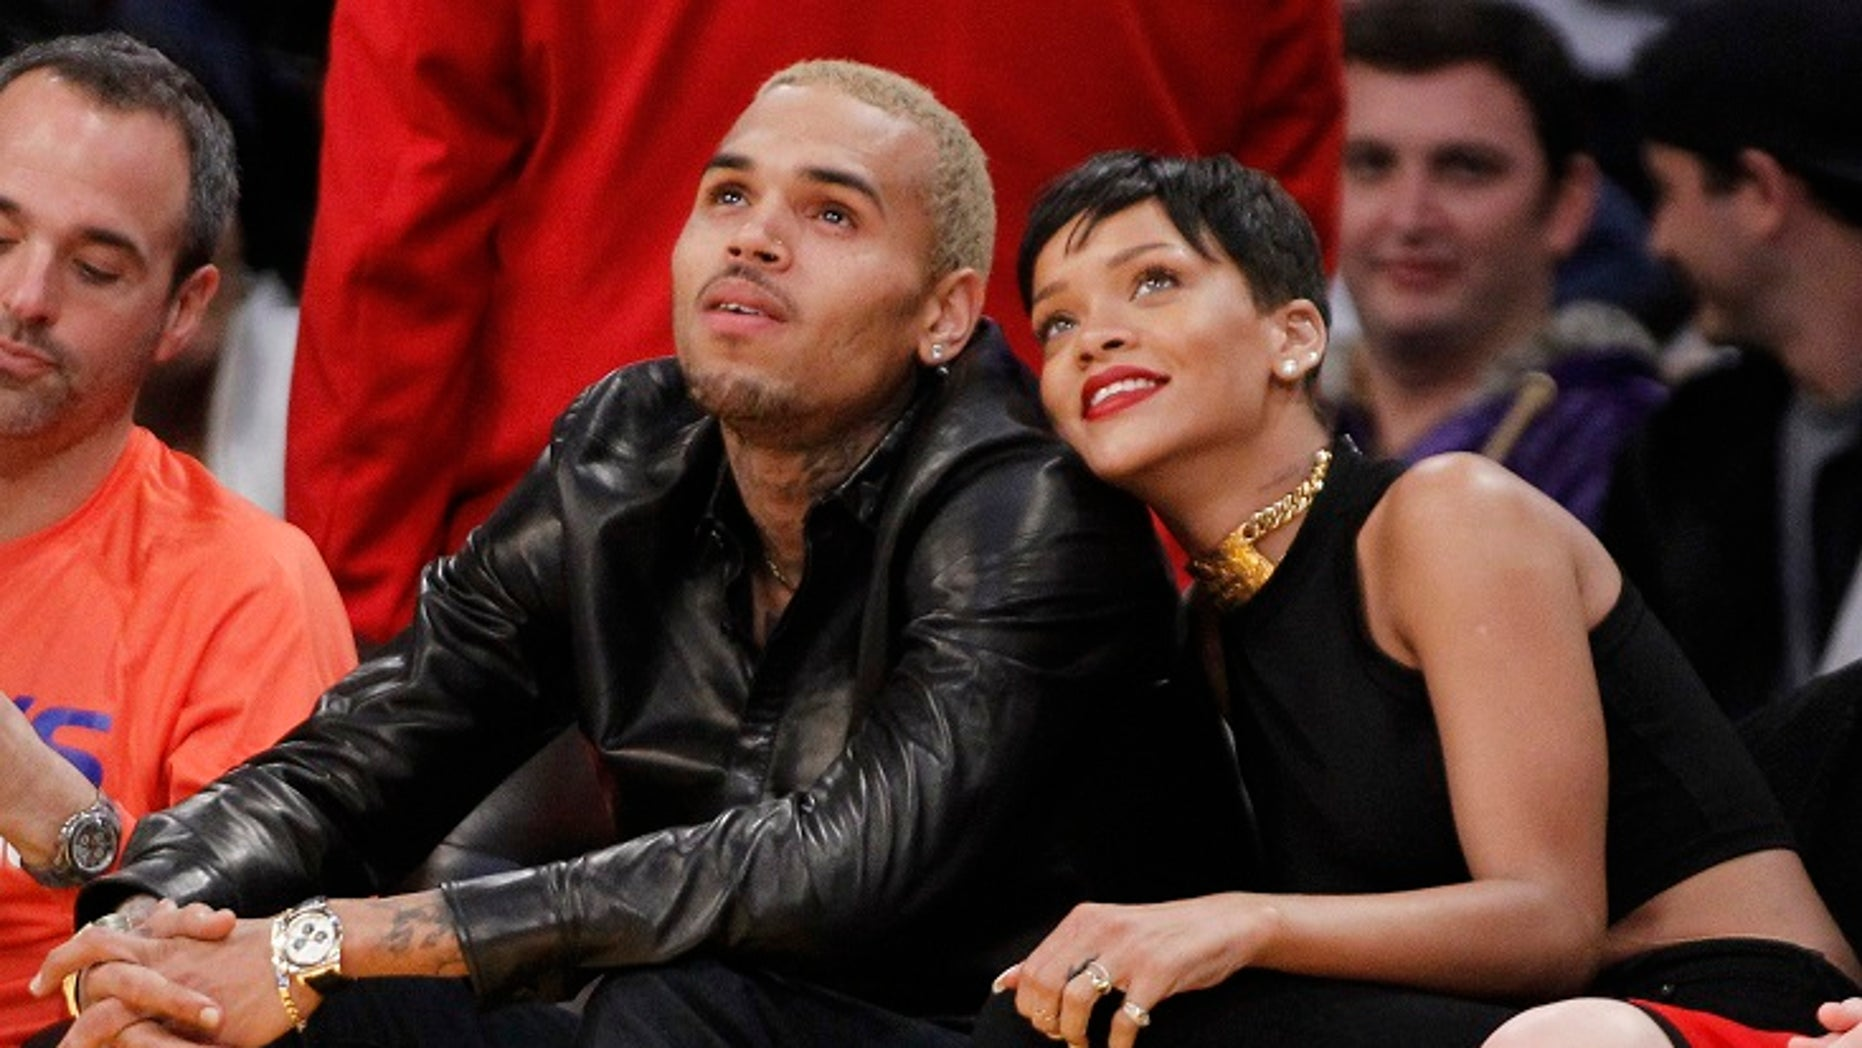 Chris Brown got backlash after commenting on a nude photo of Rihanna.